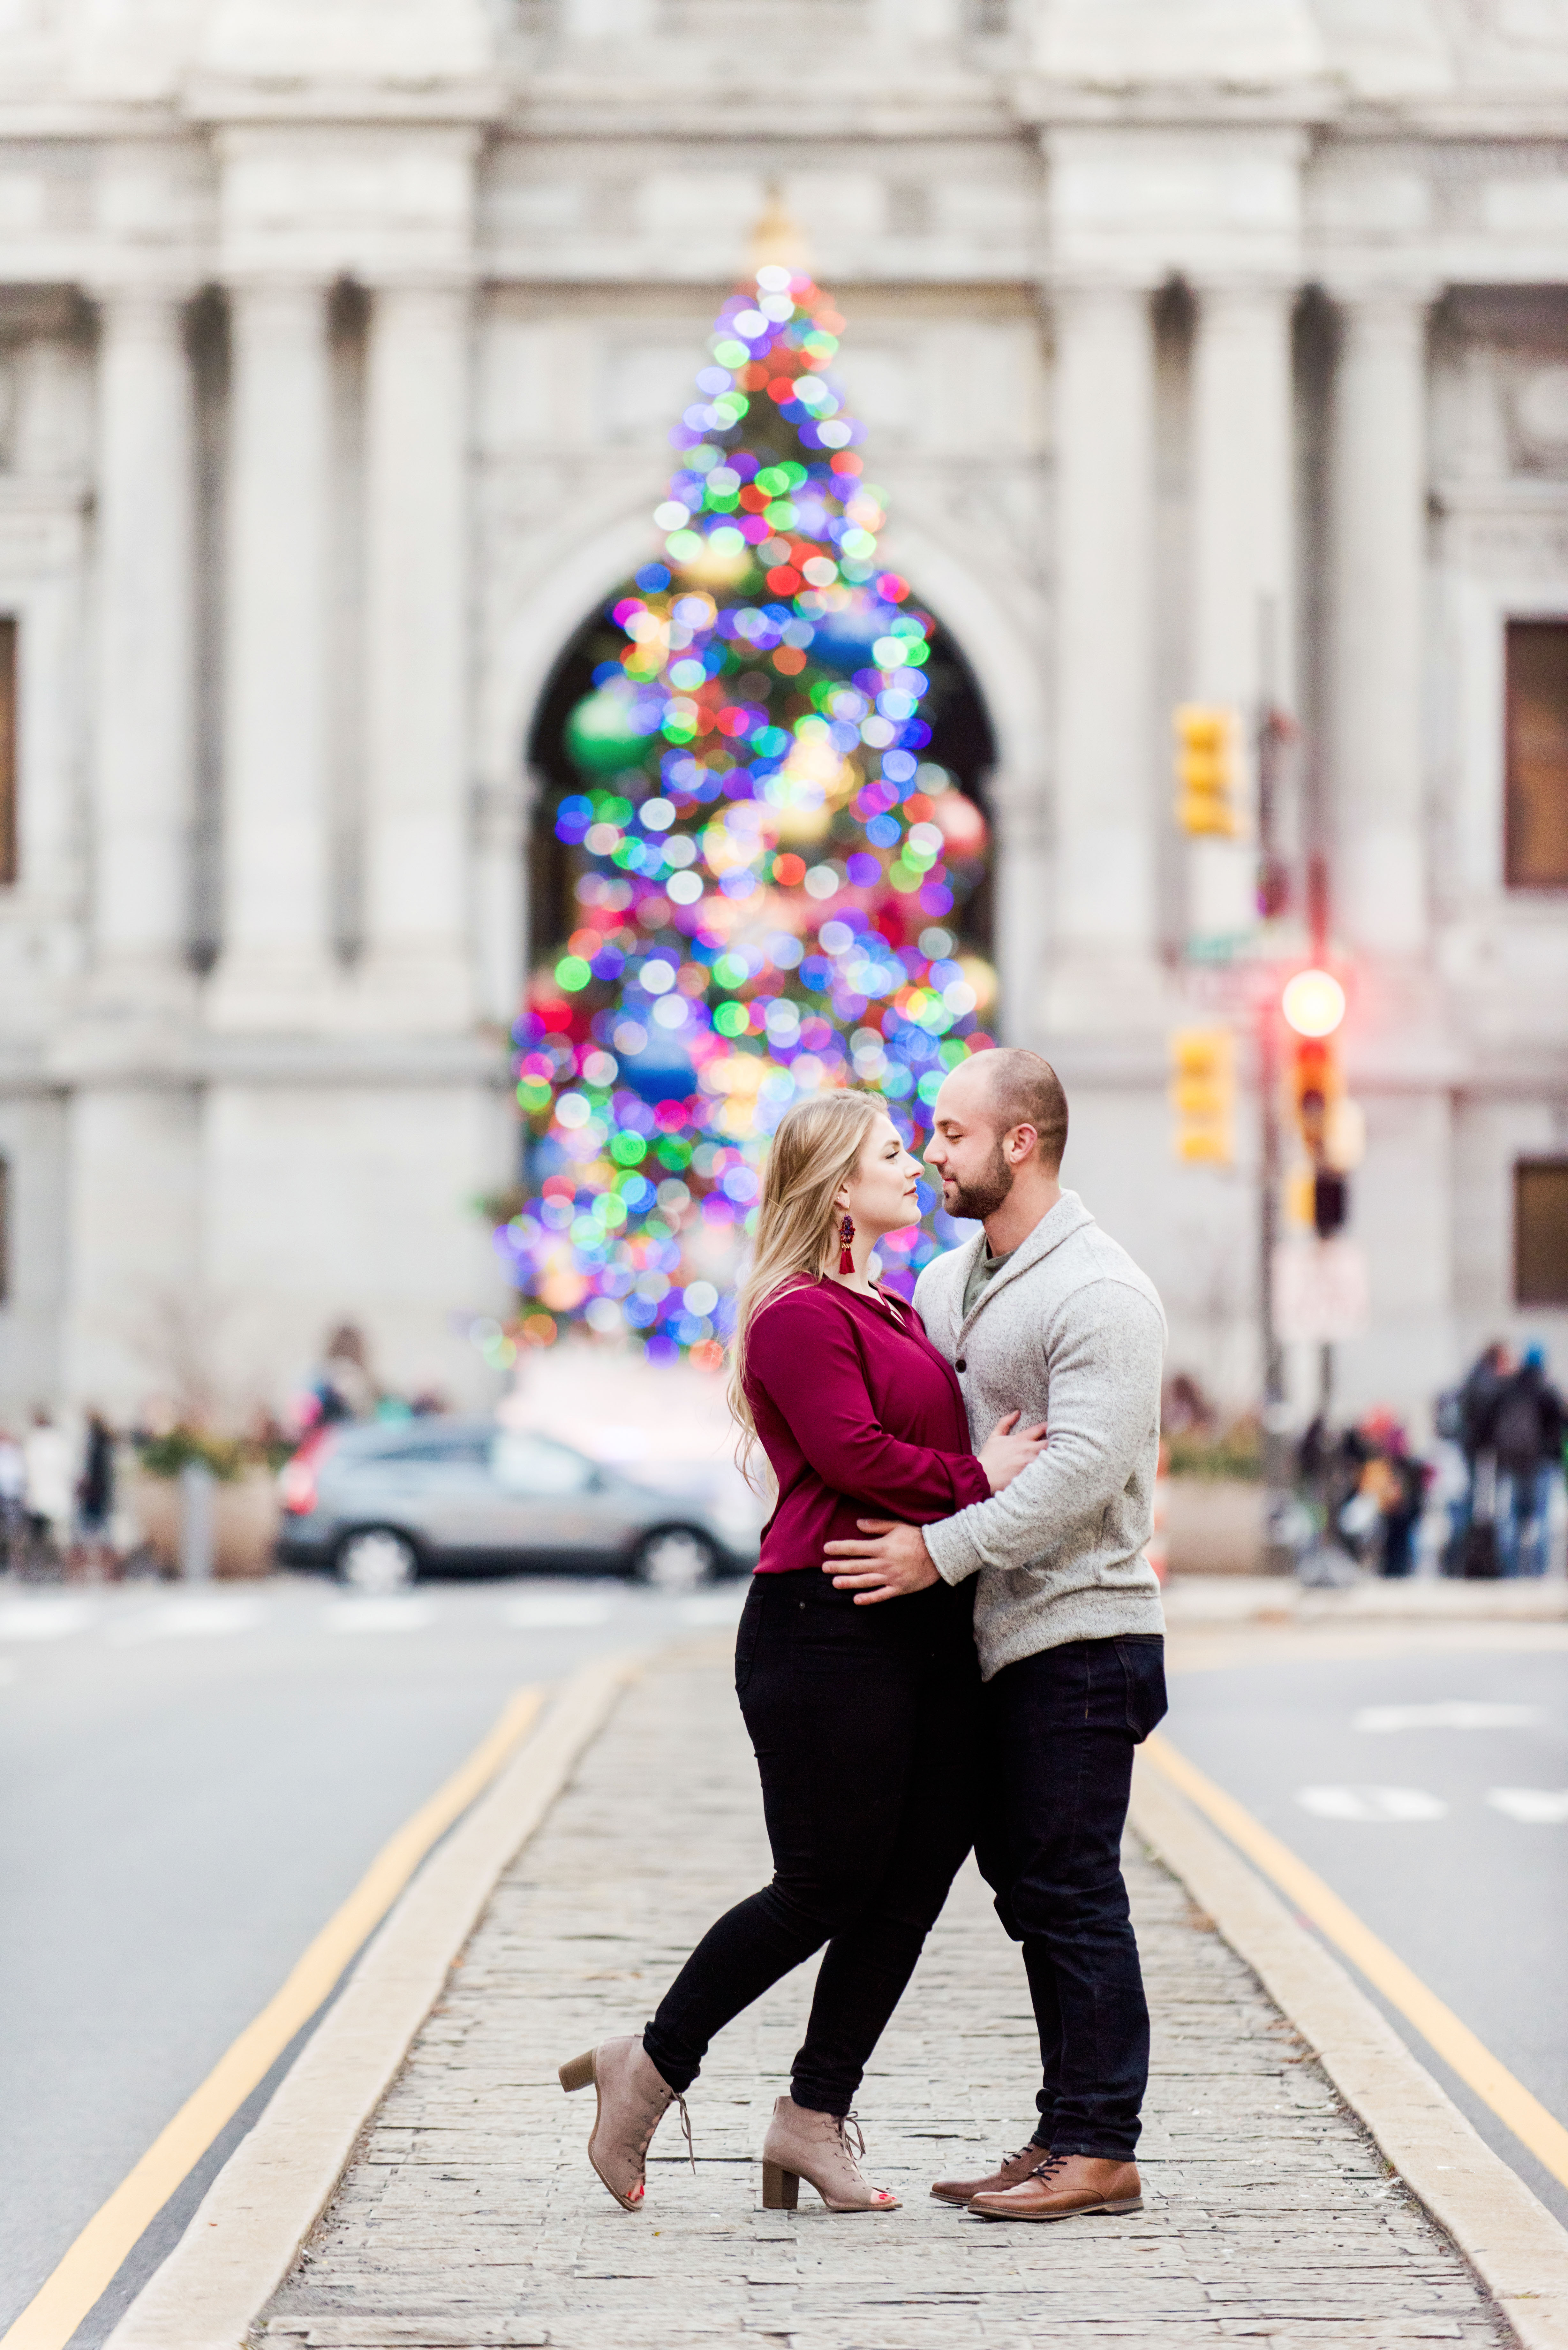 Engagement Photos Philadelphia Pennsylvania City Portraits Andrea Krout Photography-2